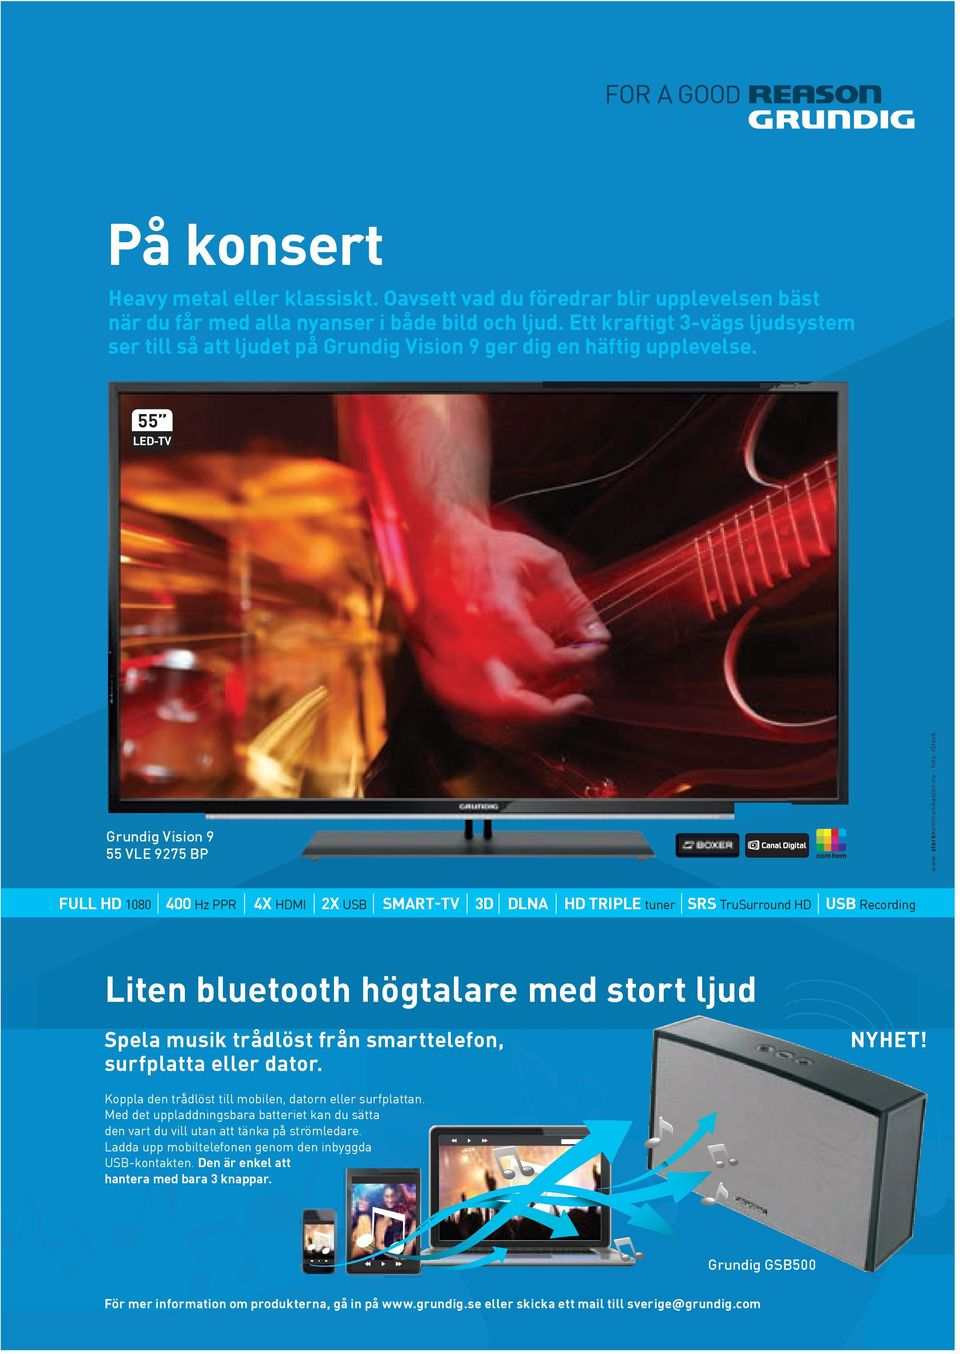 no - foto: istock FULL HD 1080 400 Hz PPR 4X HDMI 2X USB SMART-TV 3D DLNA HD TRIPLE tuner SRS TruSurround HD USB Recording Liten bluetooth högtalare med stort ljud Spela musik trådlöst från